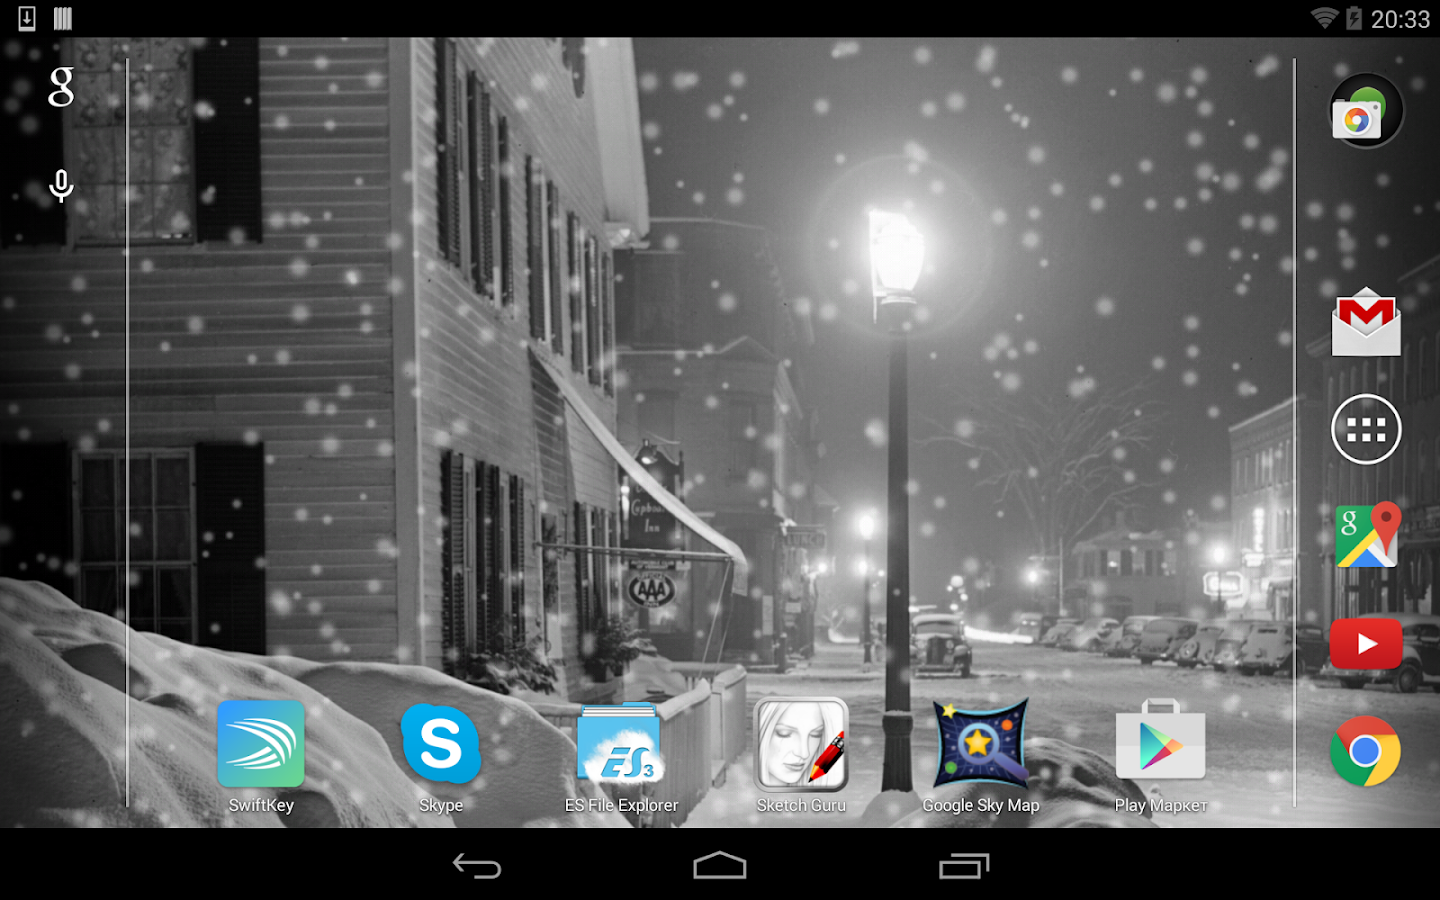 Lovely Snowfall Live Wallpaper- screenshot